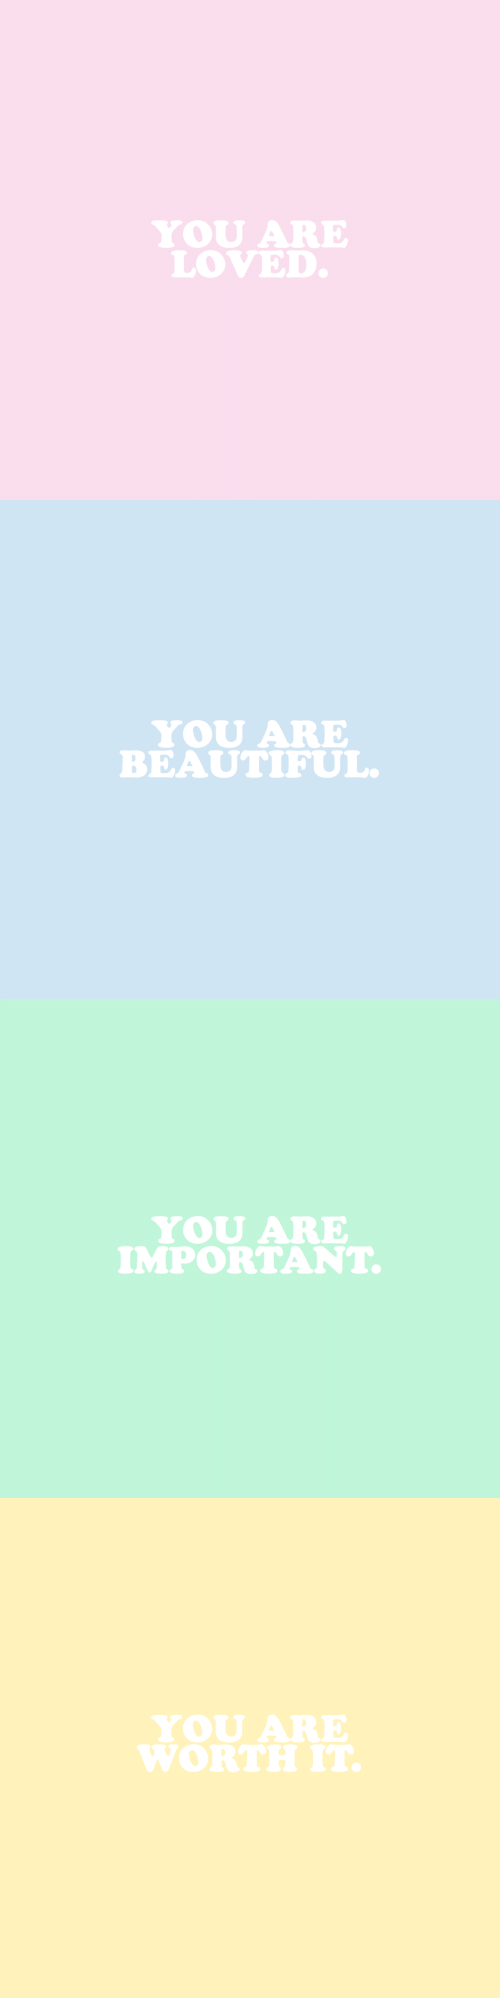 you are loved: YOU ARE  LOVED   YOU ARE  BEAUTIFUL   YOU ARE  IMPORTANT.   YOU ARE  WORTHIT.